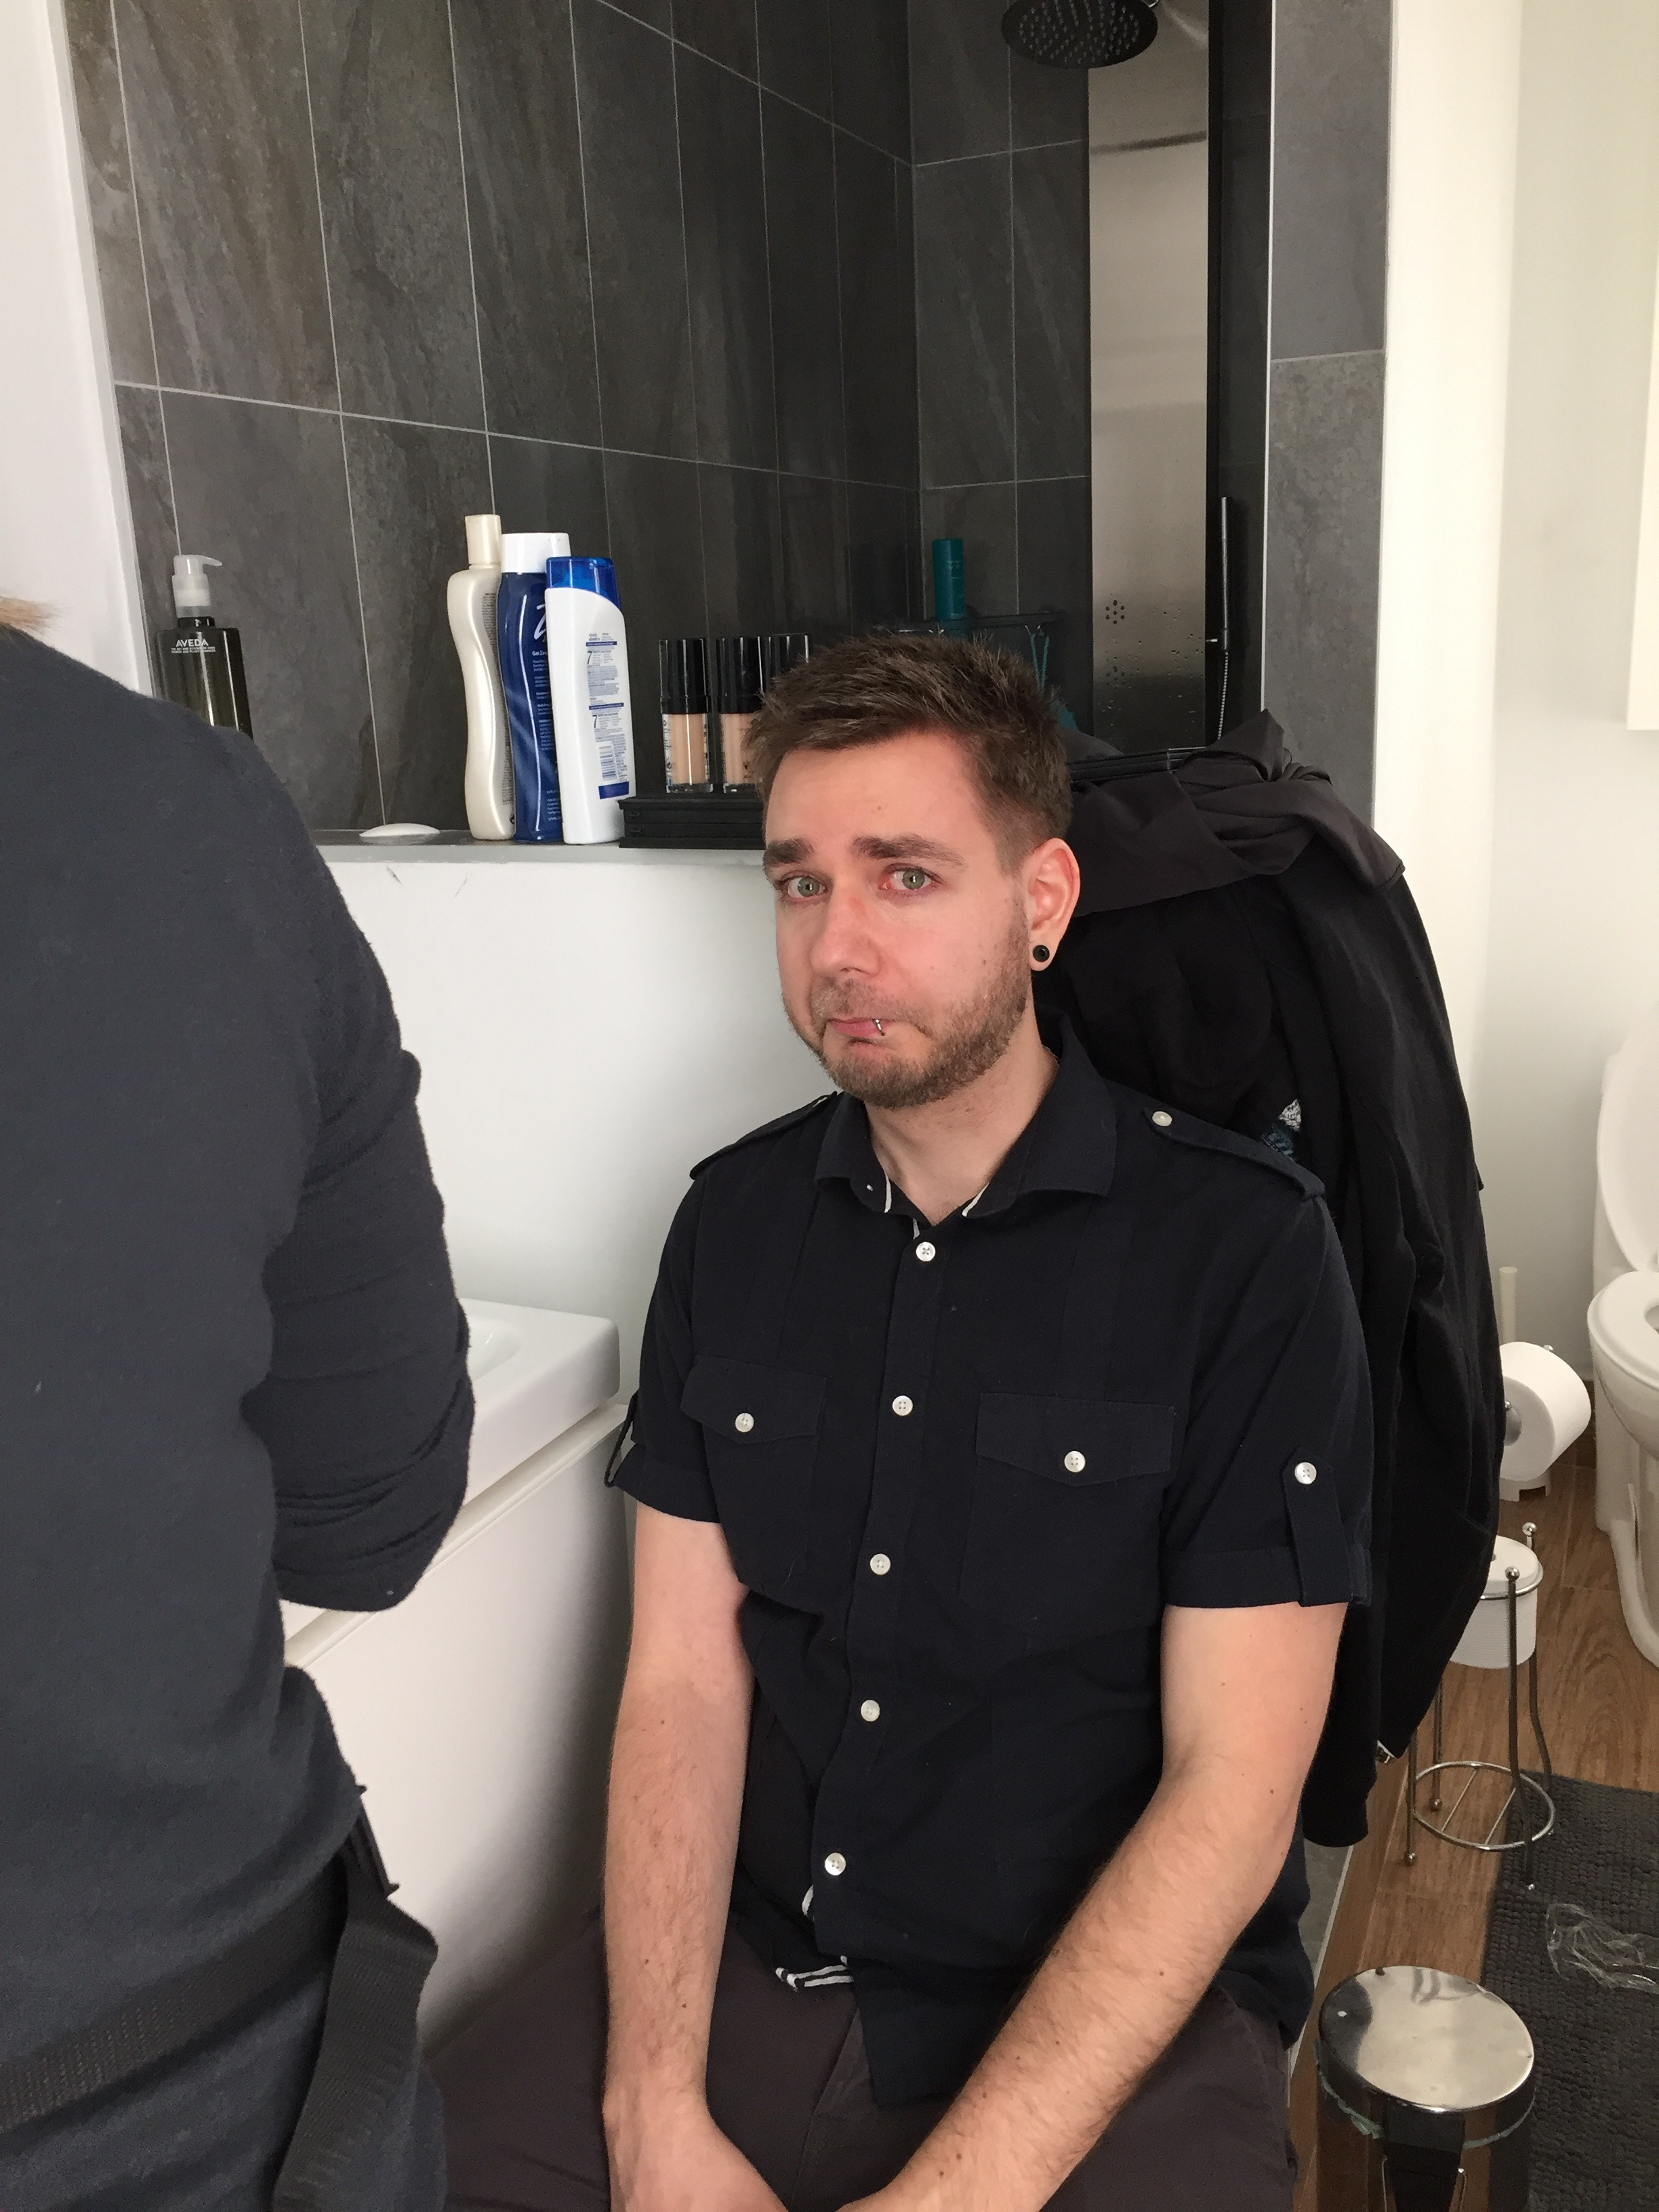 Scared about his first makeup session